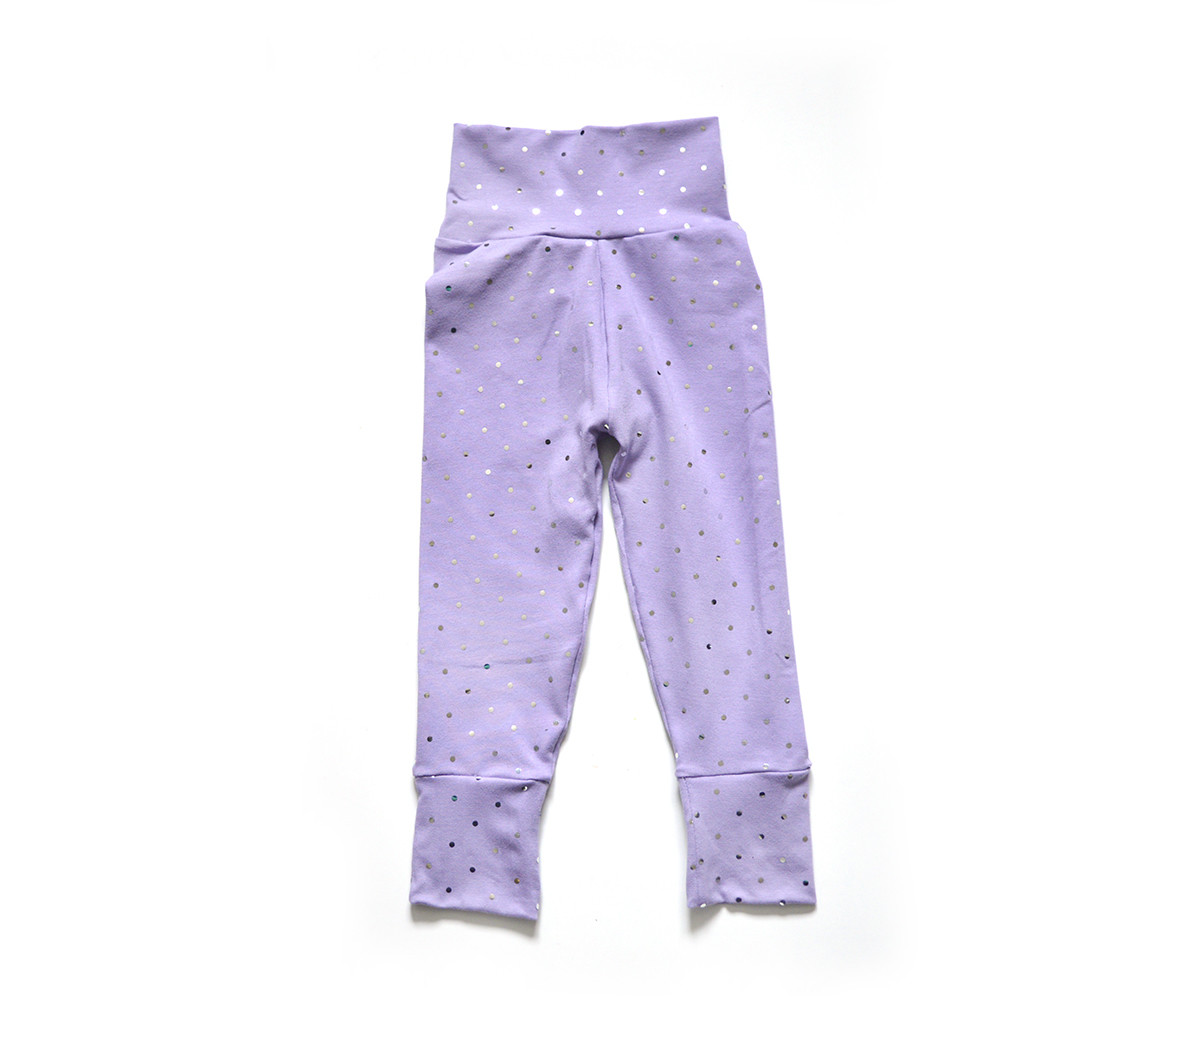 Little Sprout Pants™ Spangled Lavender- Cotton